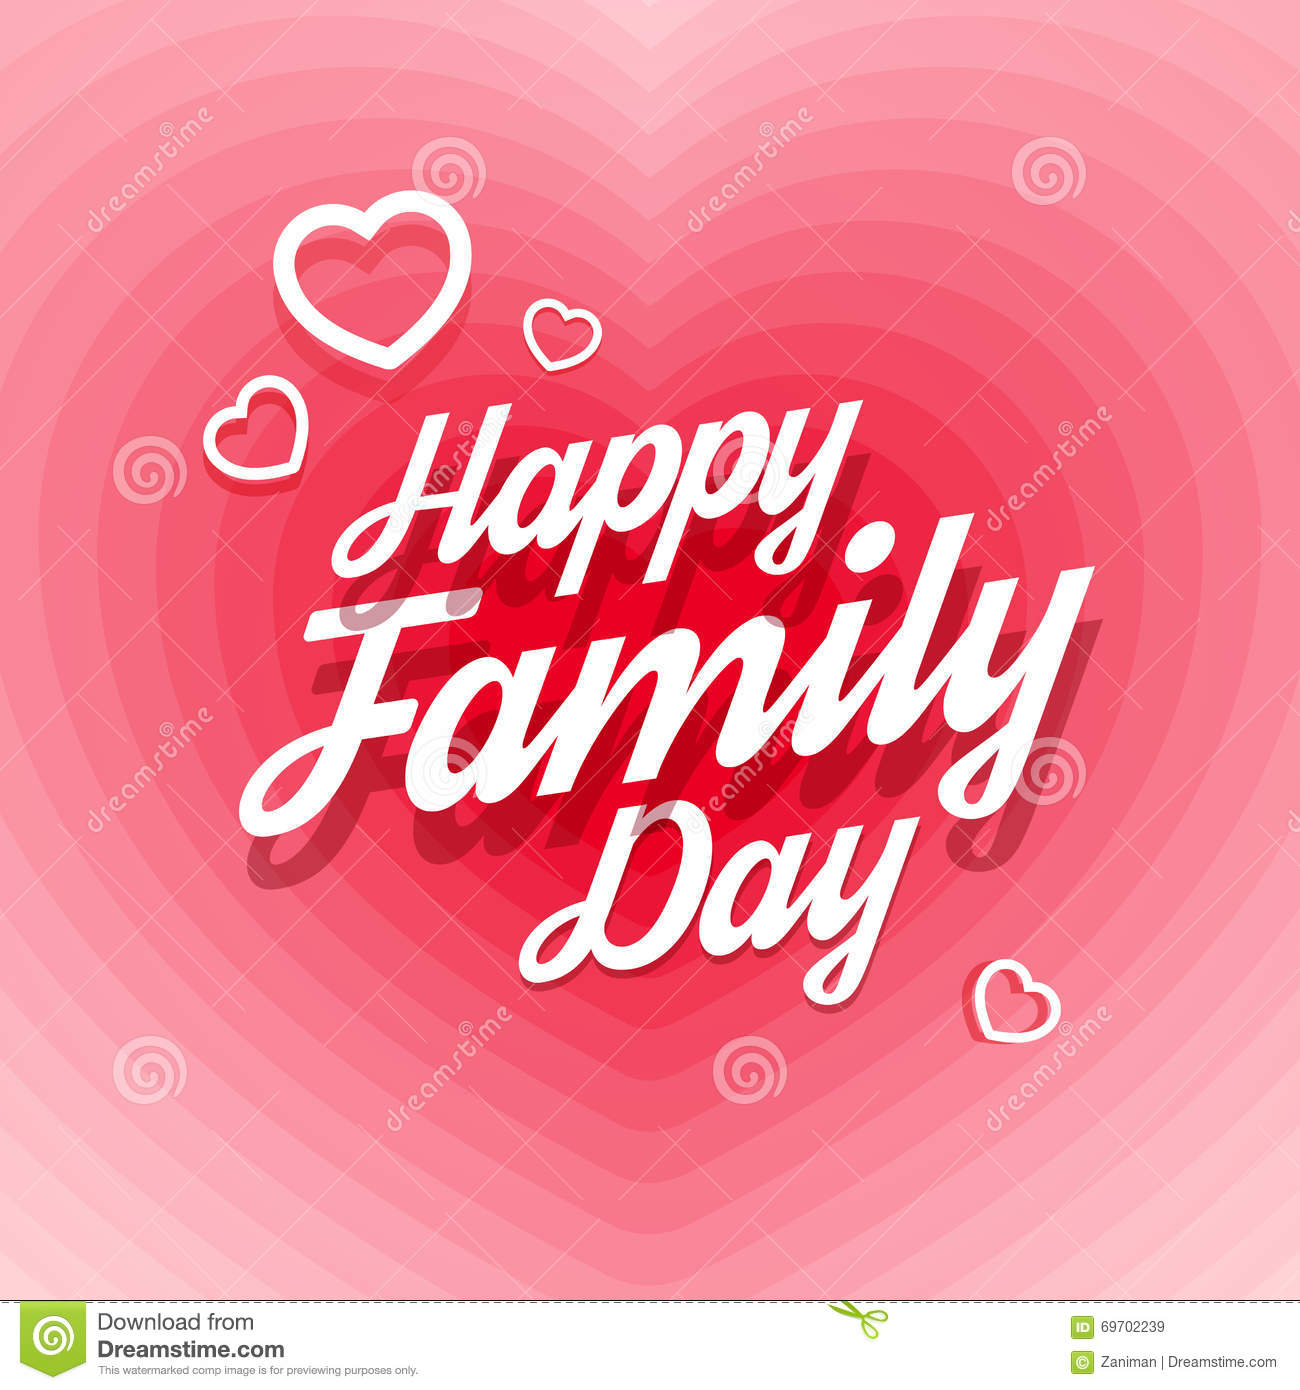 happy family day greeting card vector illustration gradient abstract effect heart shape calligraphic text 69702239